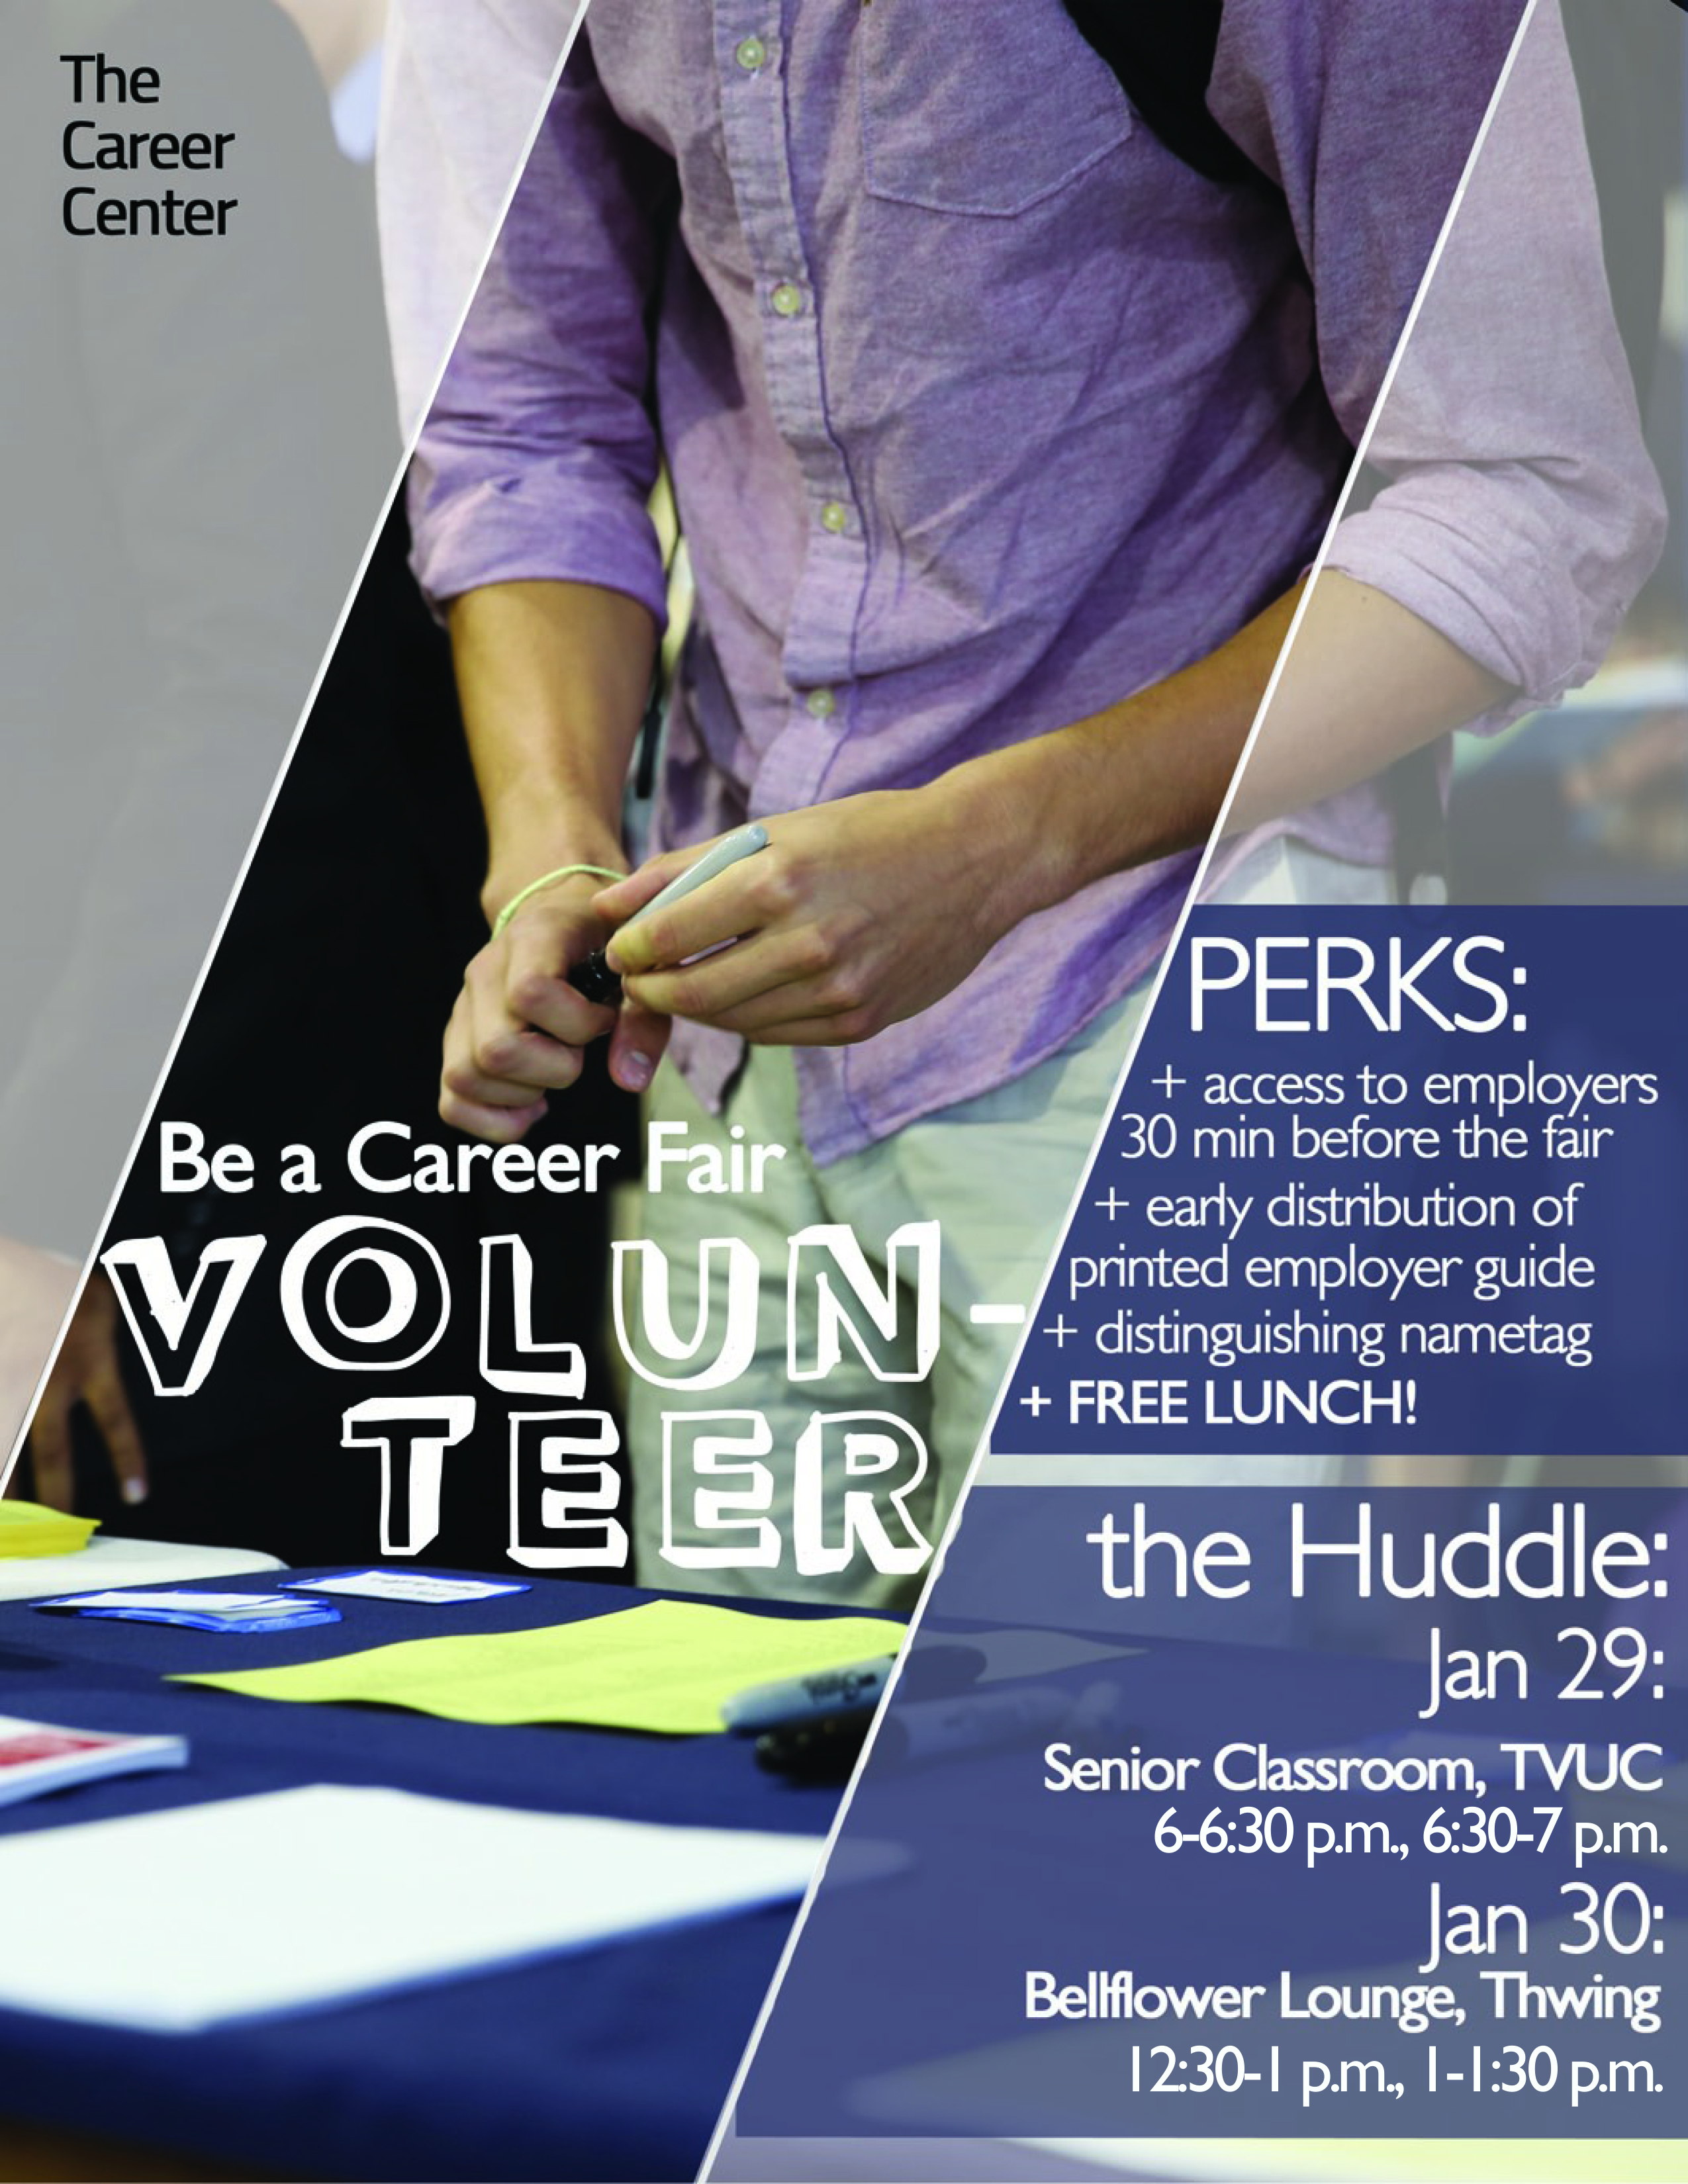 be a career fair volunteer for early access to employers interested in early access to employers at the career fair on feb 9 volunteer this week to stand out from the crowd